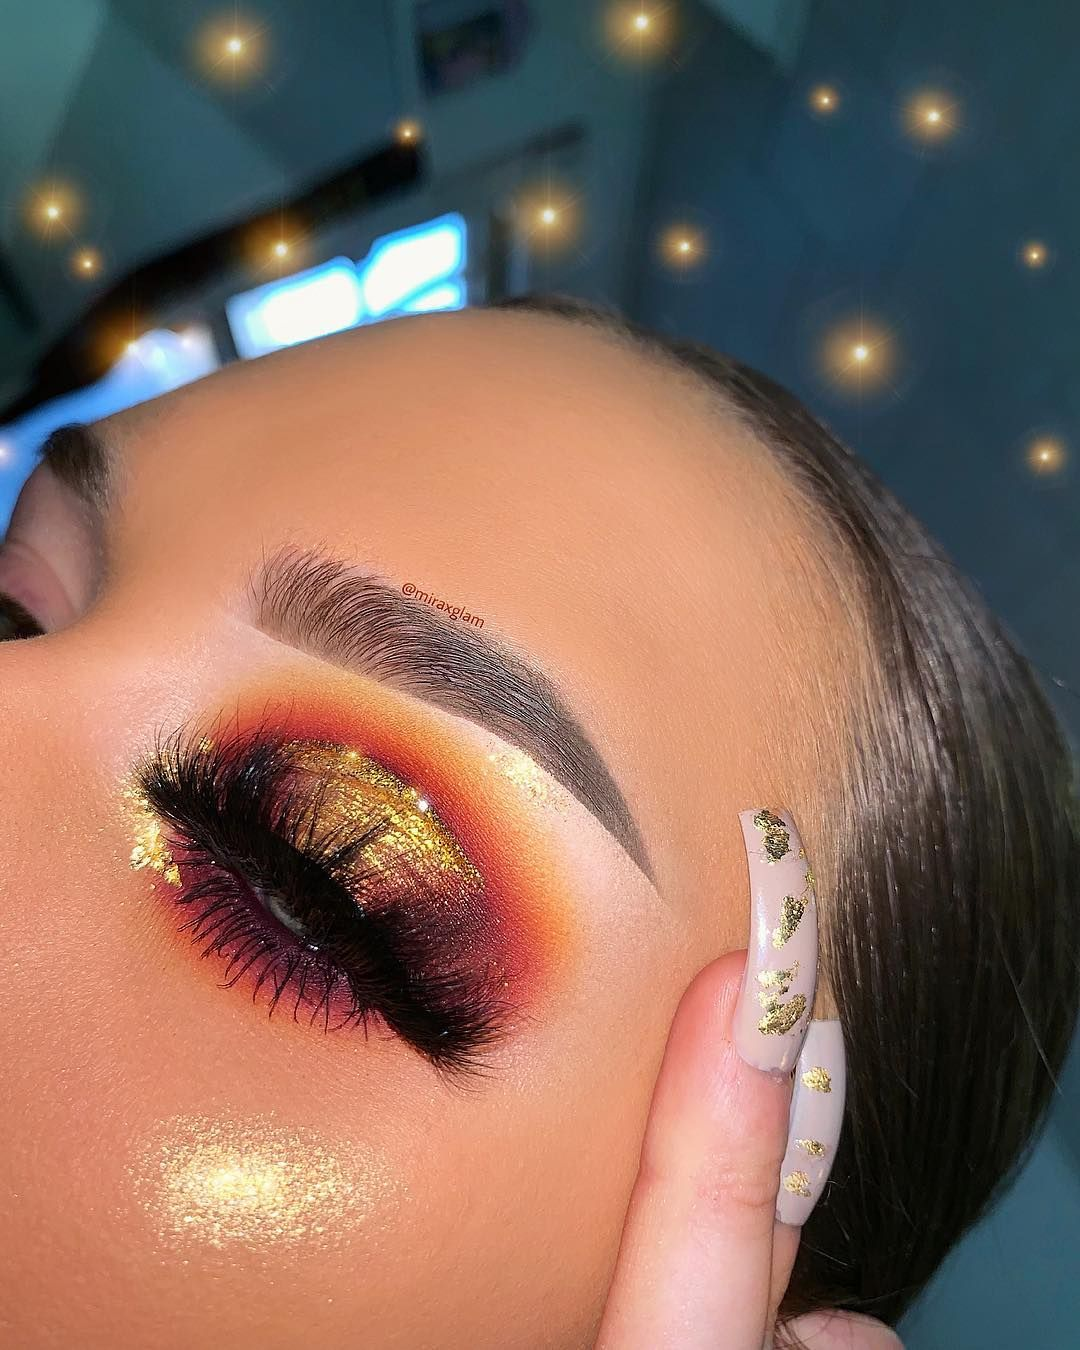 Golden Hour Golden Sunset Looks Are My Favorite I Hope You All Love Them As Much As I Do Son Glowy Makeup Aesthetic Makeup Eye Makeup